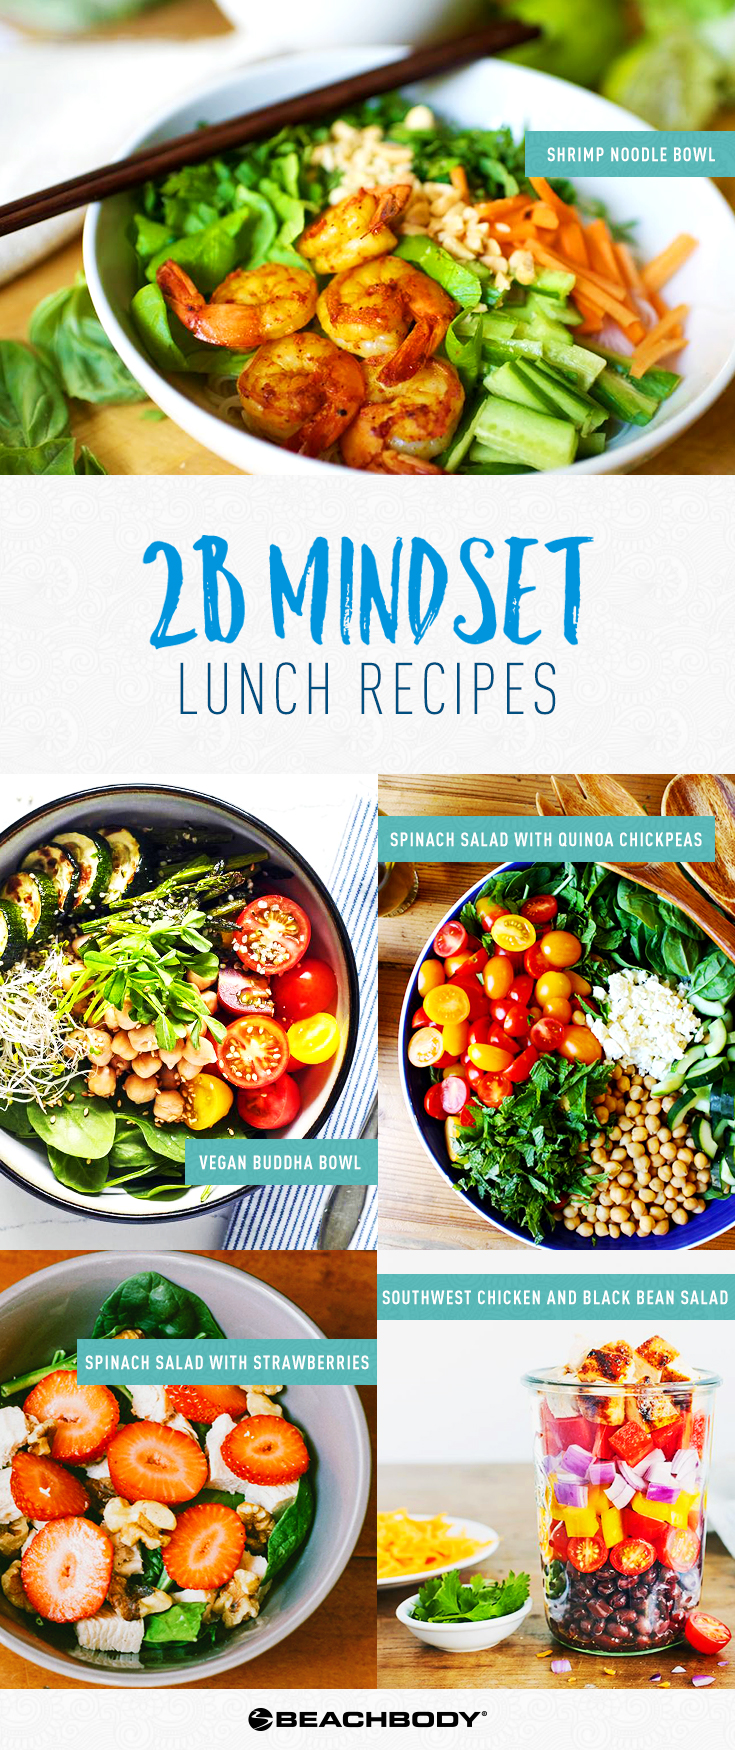 2B Mindset Lunch Recipes